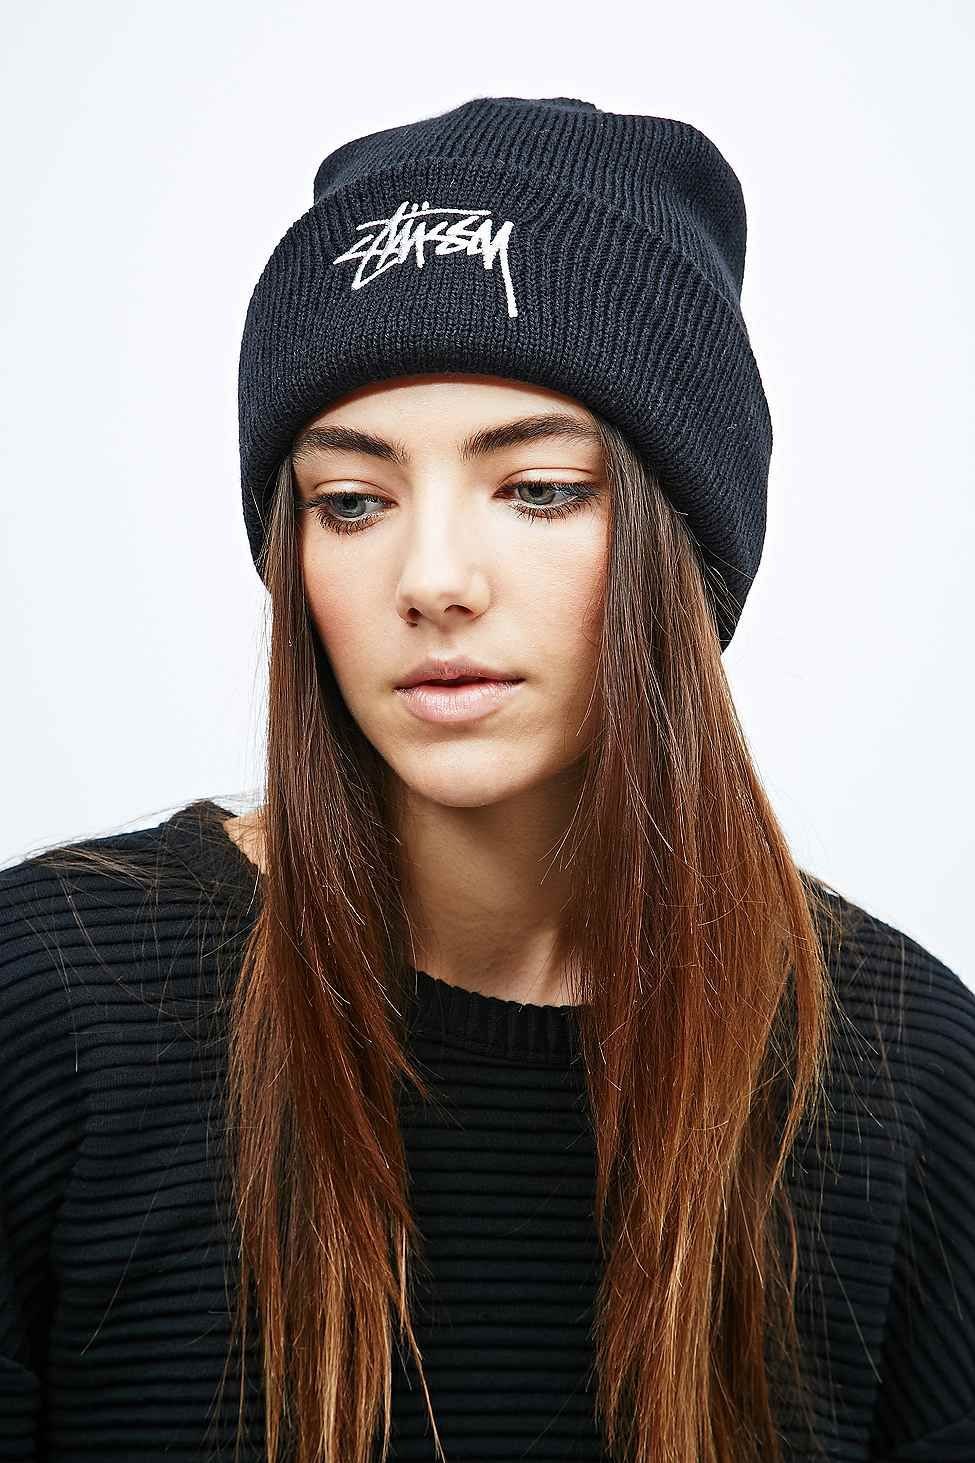 acff0a5bcf4 Stussy Stock Cuff Beanie in Black - Urban Outfitters